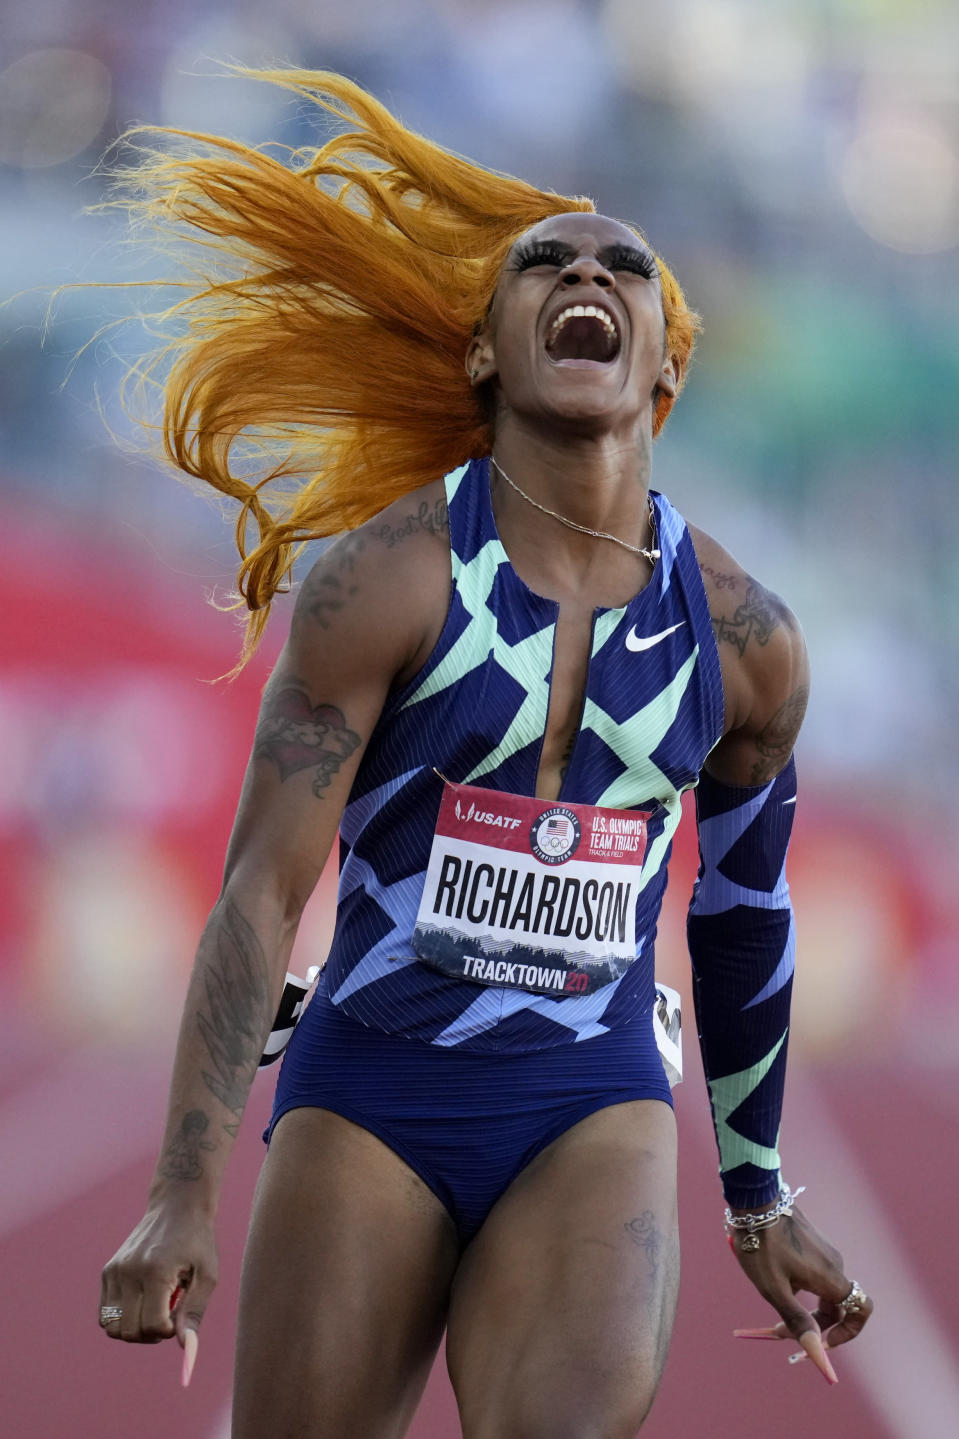 Sha'Carri Richardson celebrates after winning the women's 100-meter run at the U.S. Olympic Track and Field Trials Saturday, June 19, 2021, in Eugene, Ore. (AP Photo/Ashley Landis)